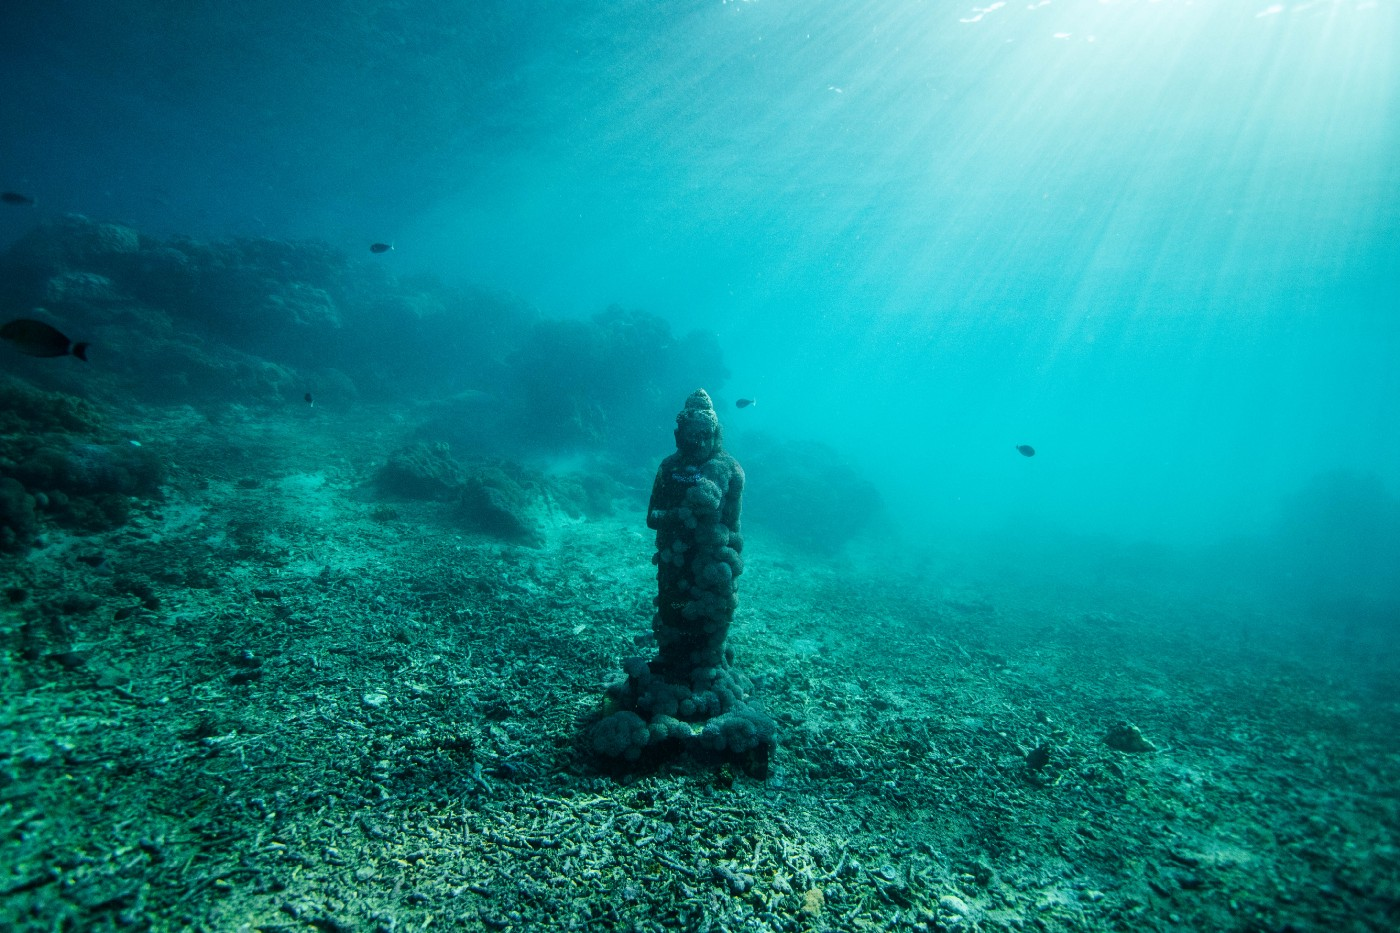 5 Ancient Prosperous Cities That Sunk in the Water